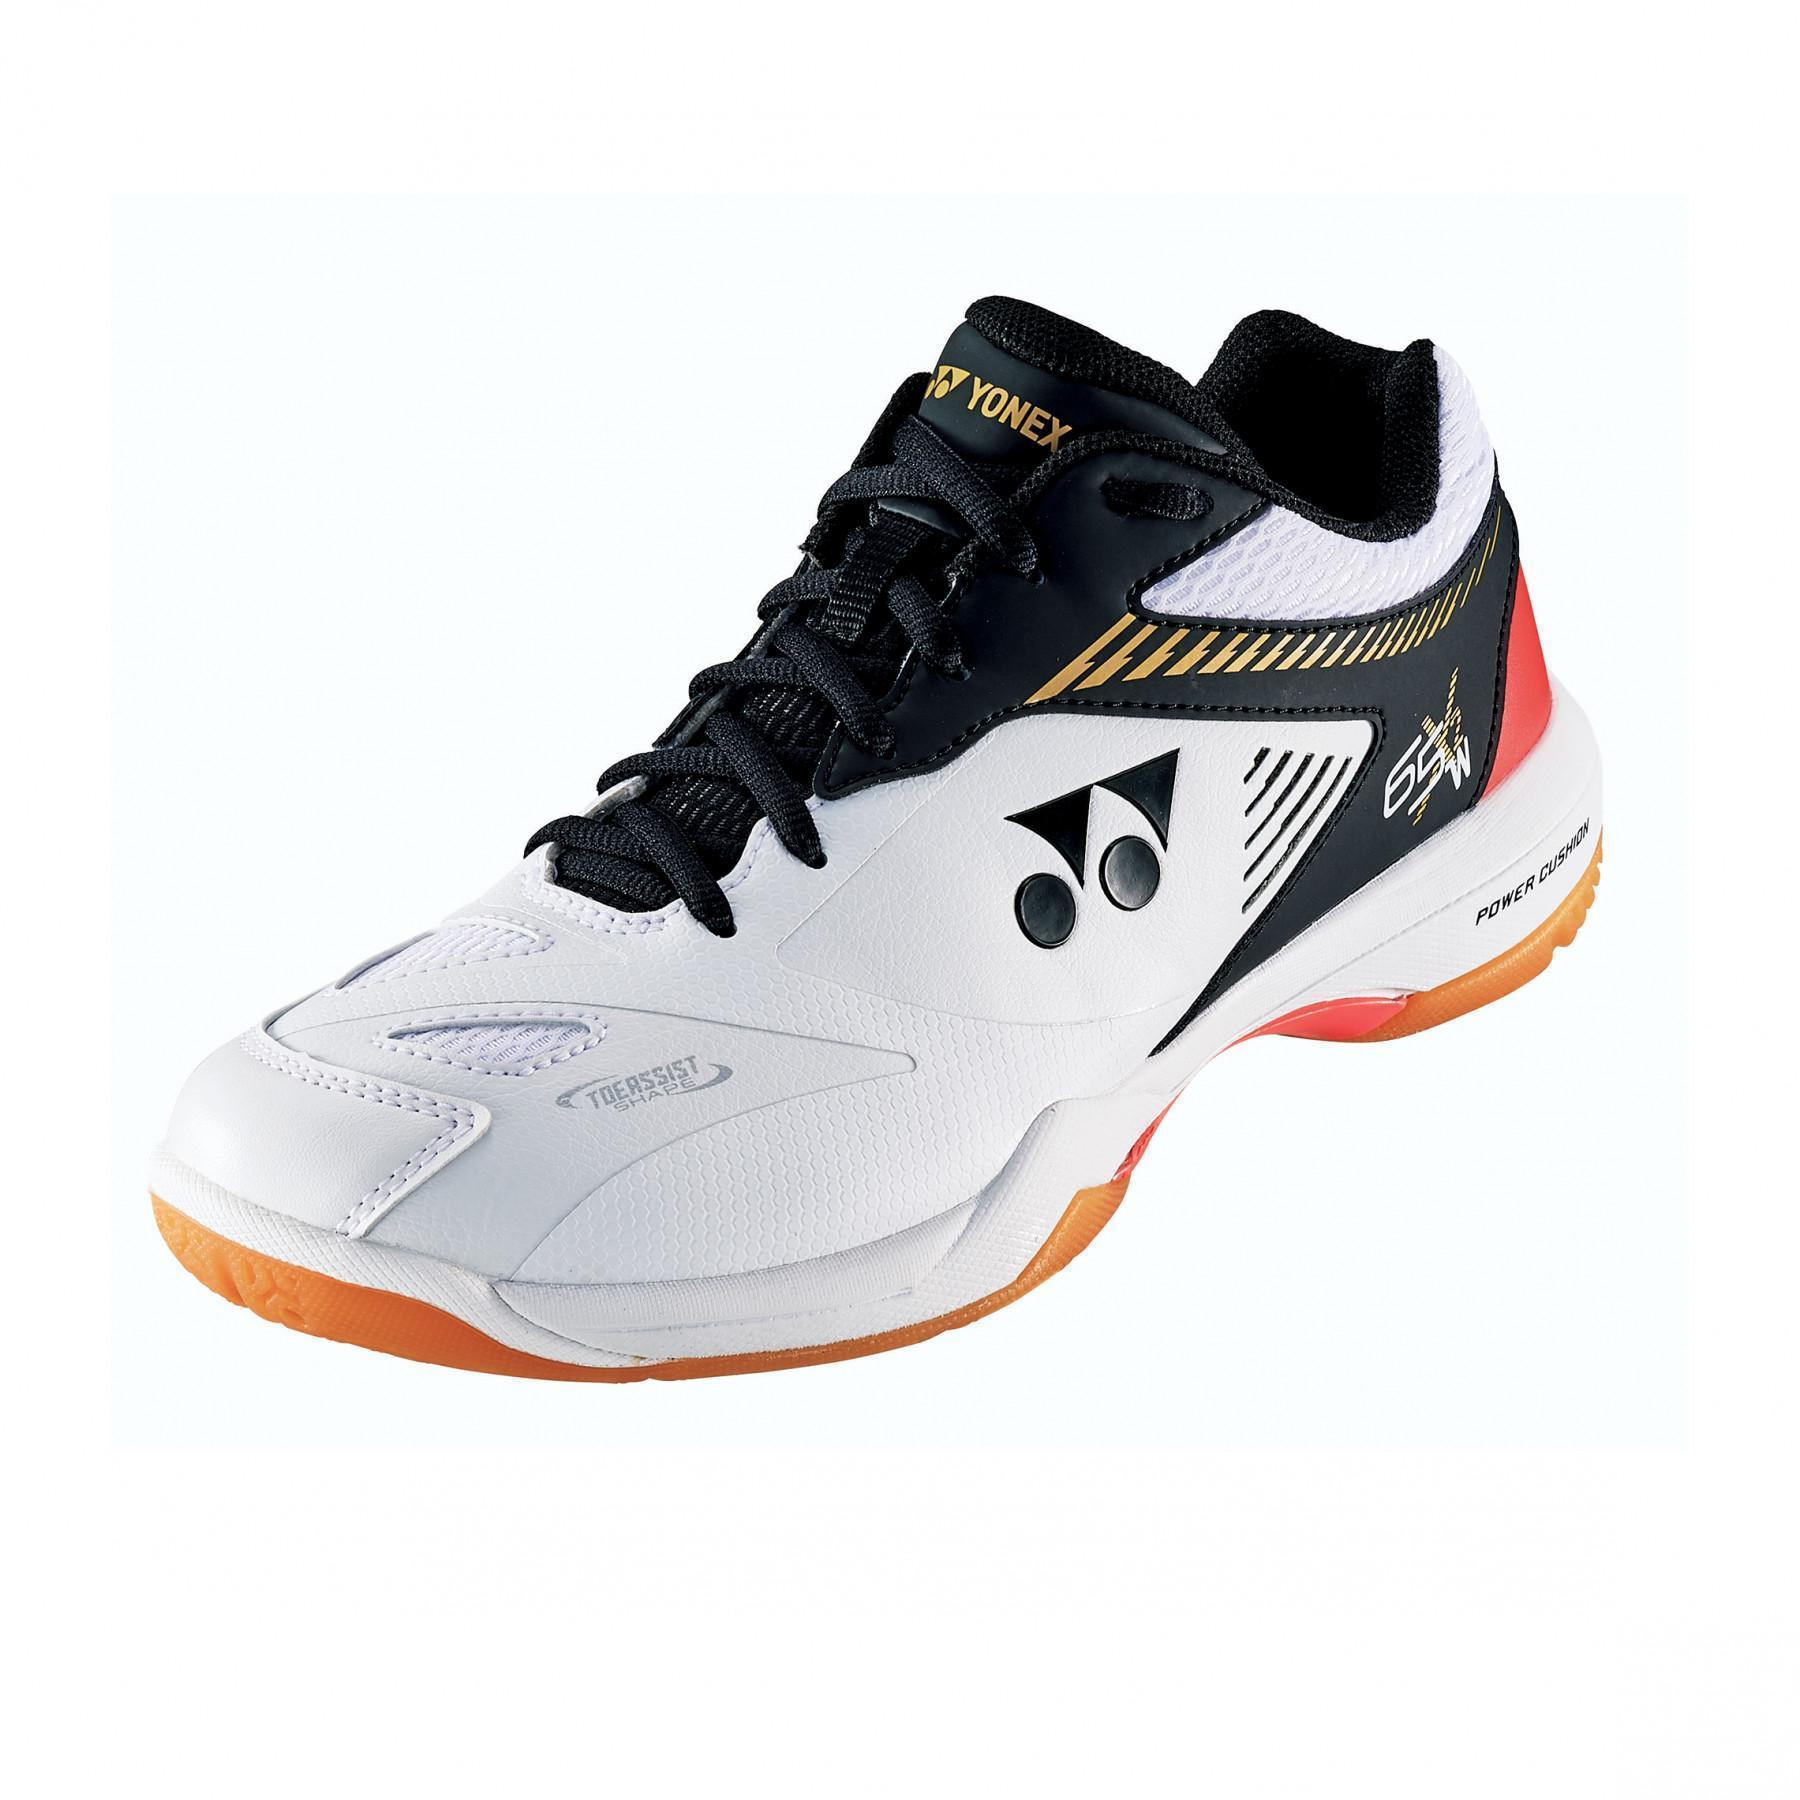 Yonex Power Cushion 65 X2 Wide Shoes